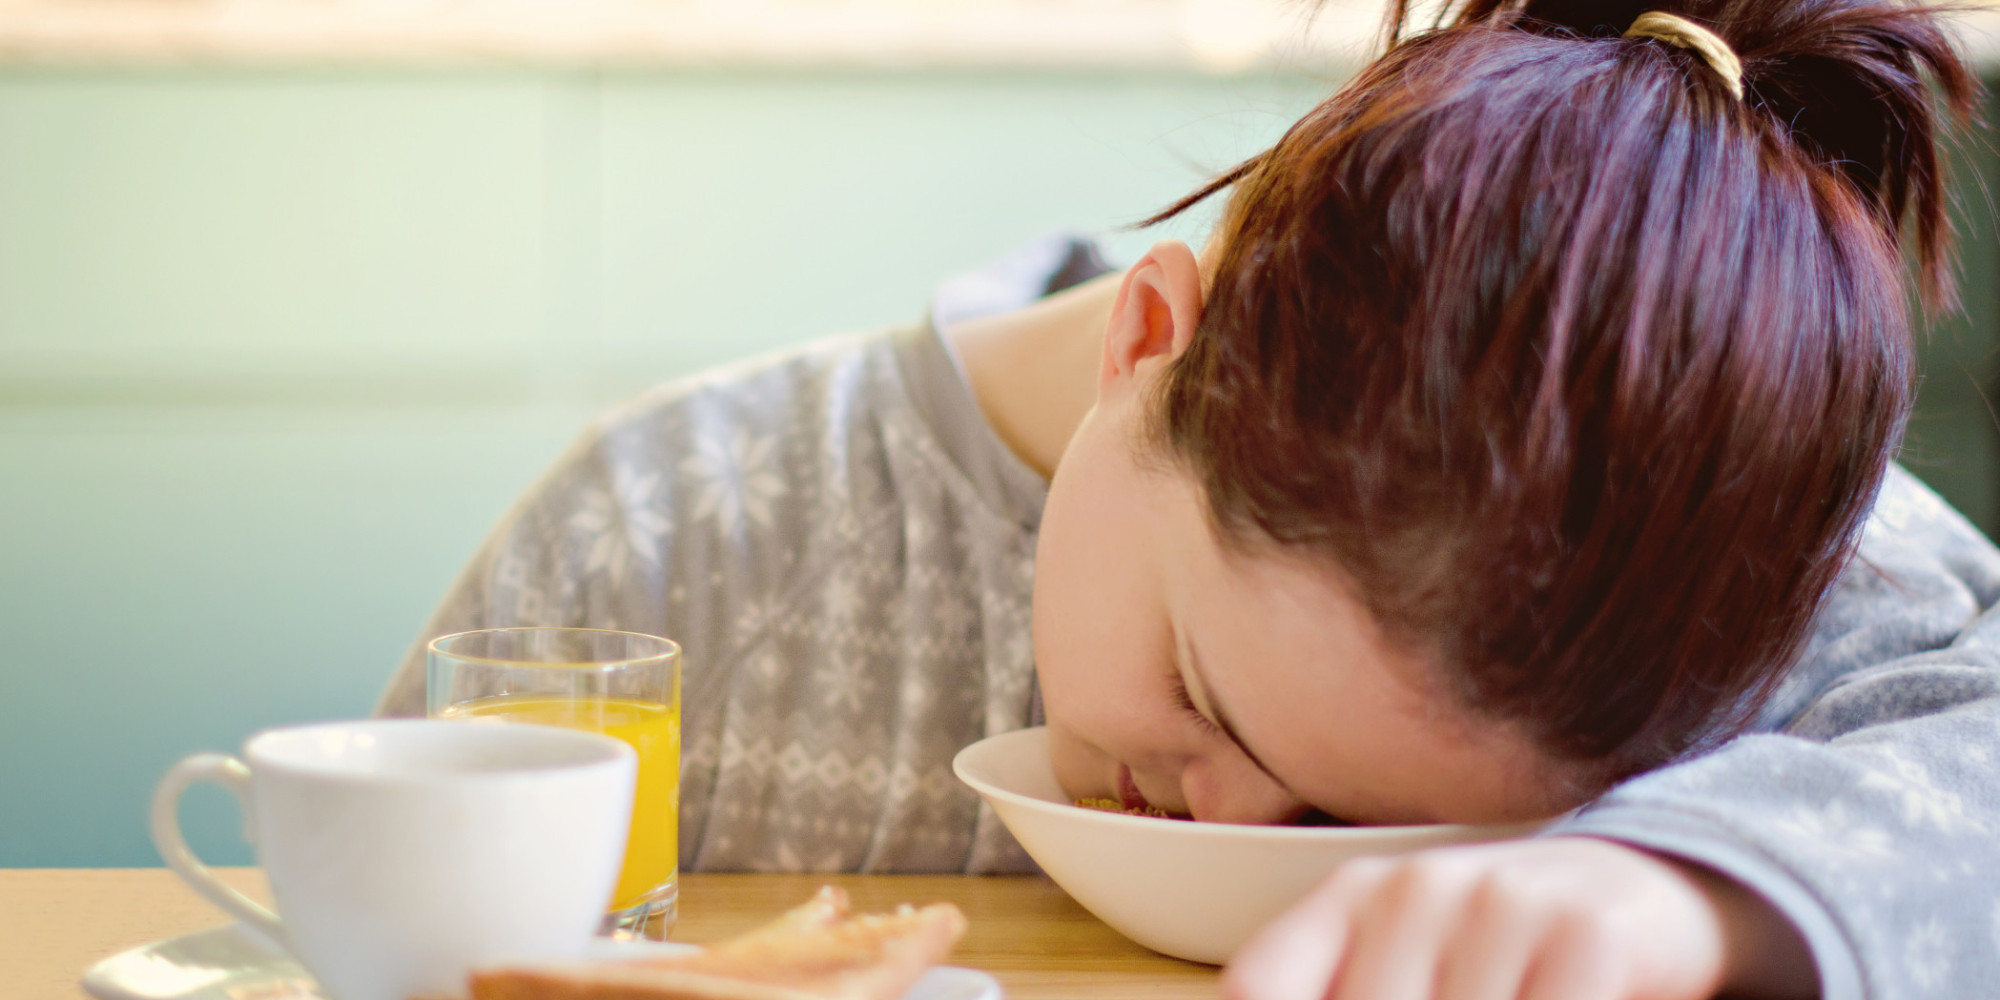 How To Get A Good Nights Sleep Eating These Foods Will